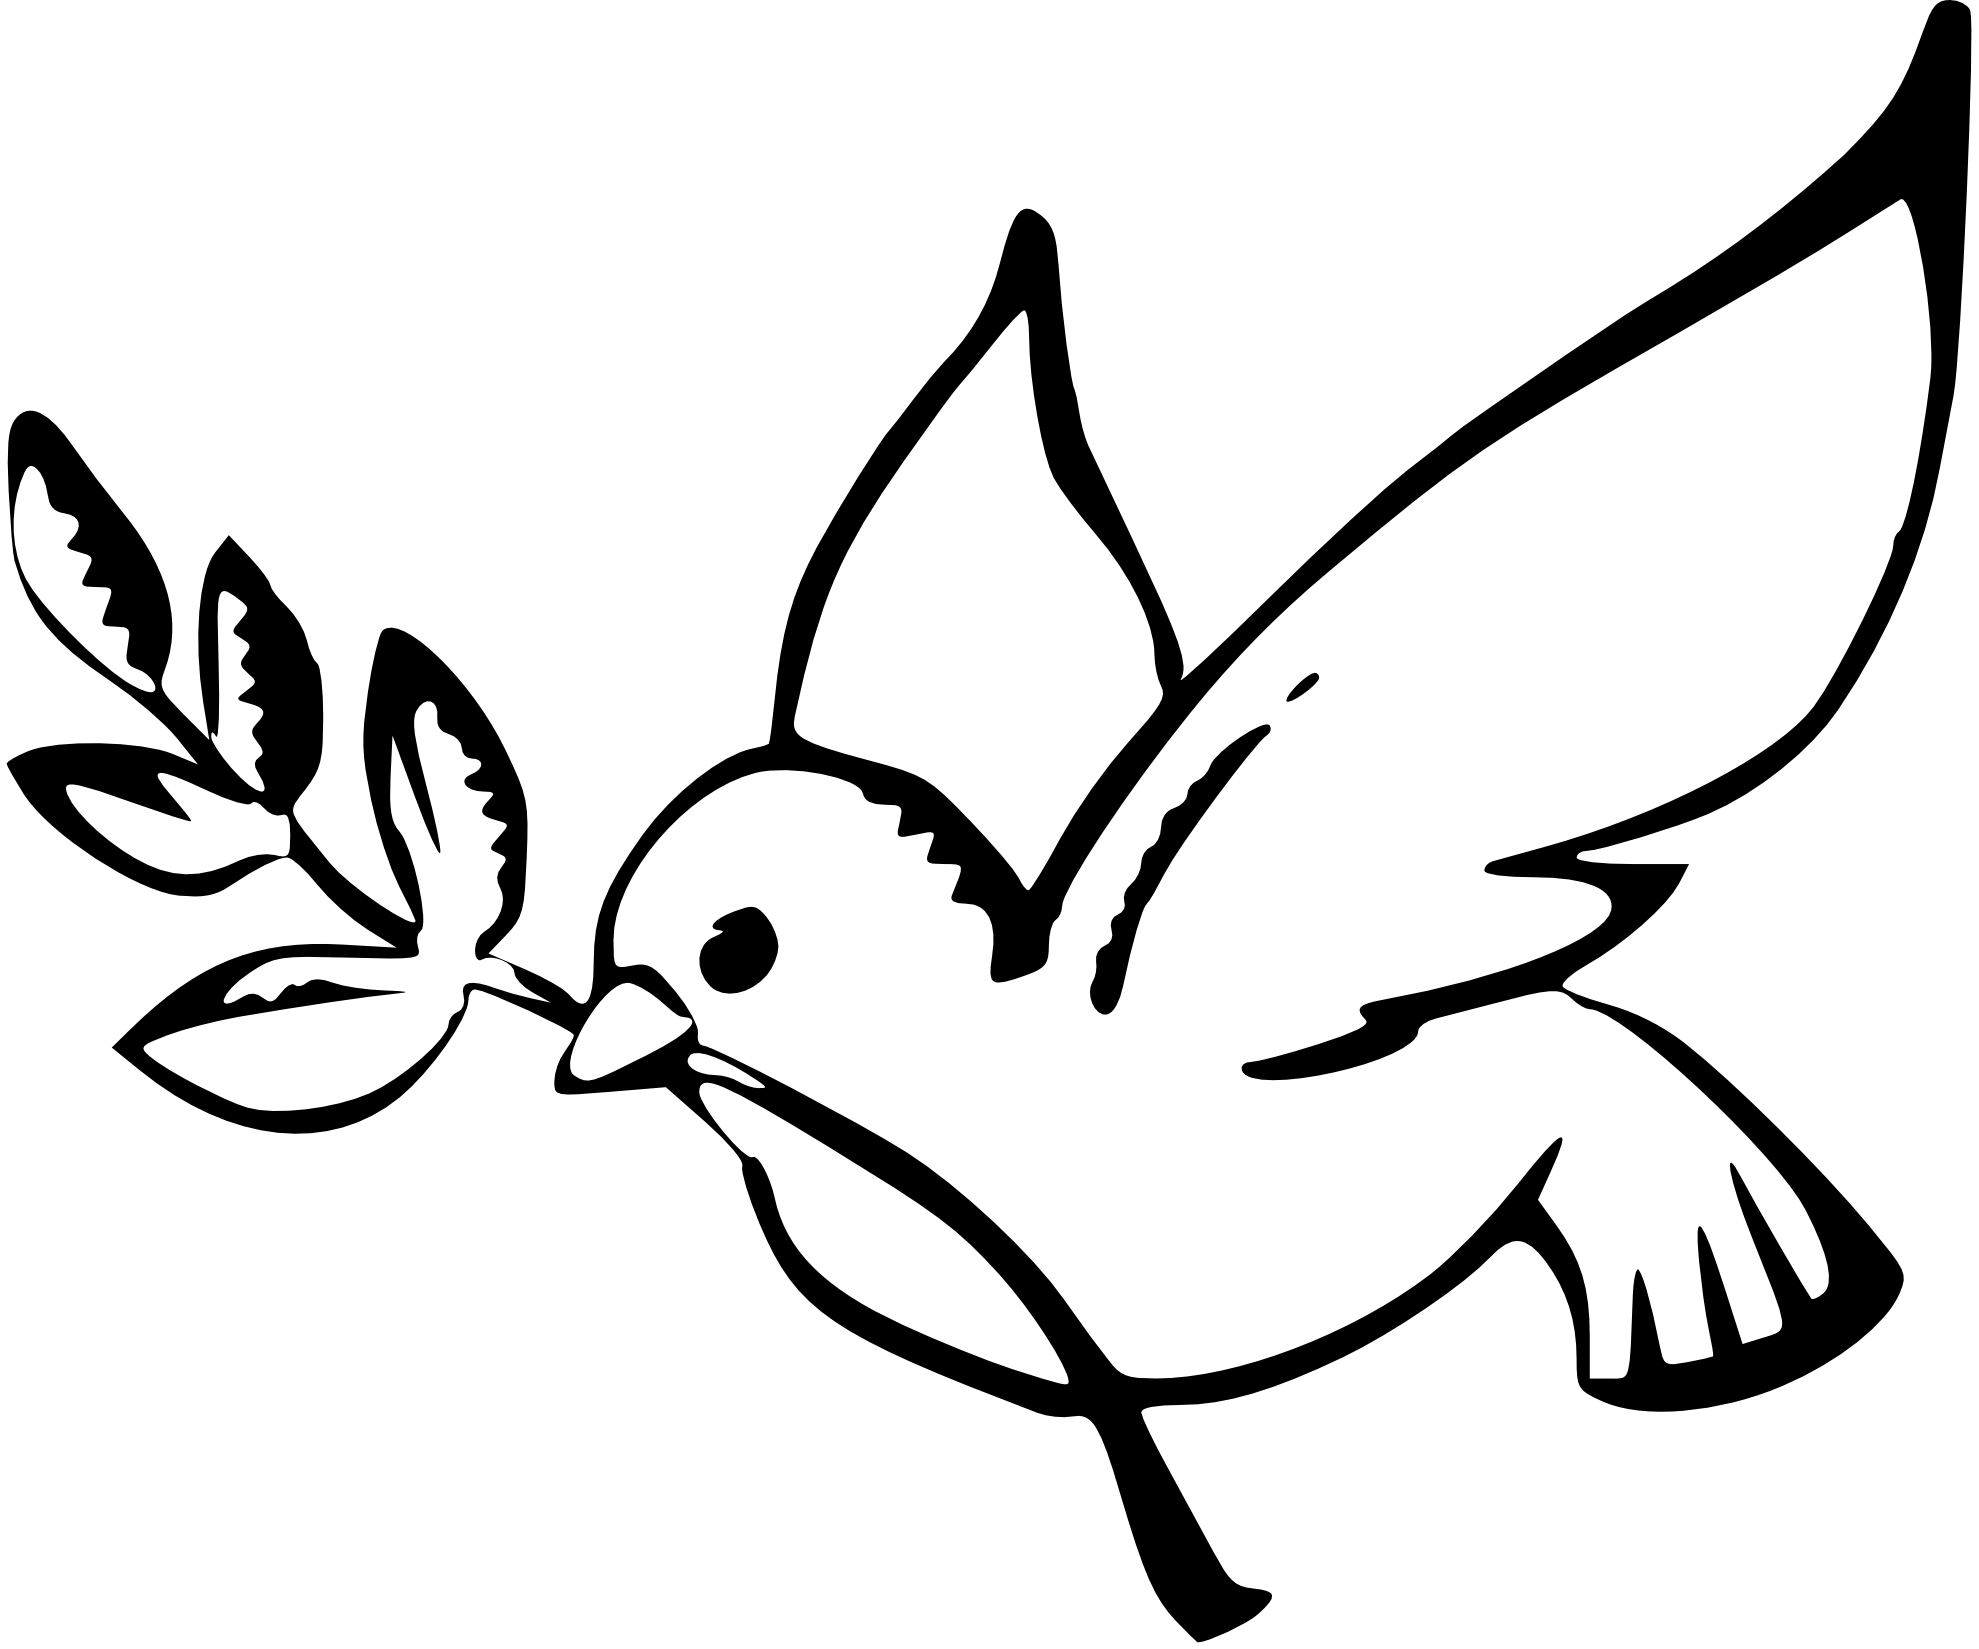 Dove Peace Black White Clipart Panda